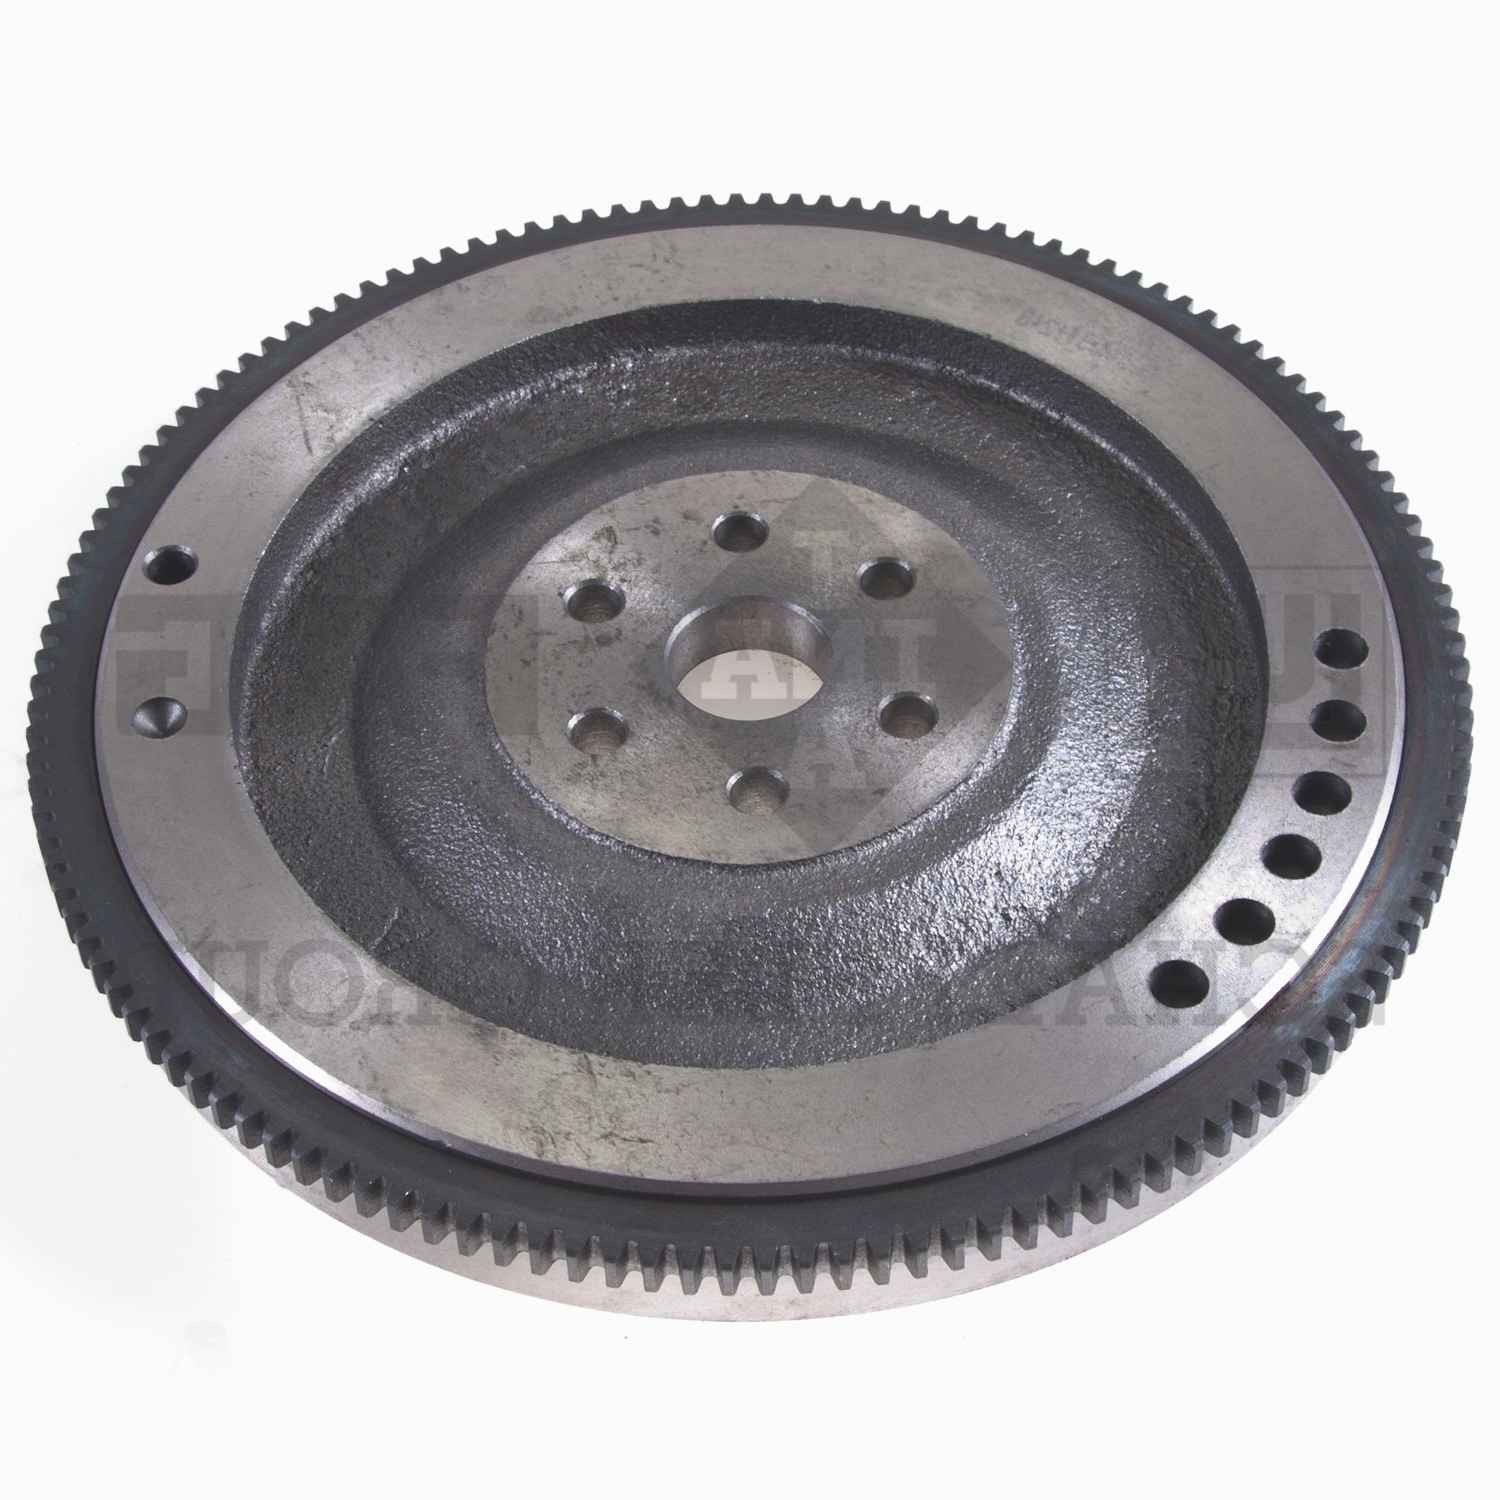 New ford Ranger Clutch